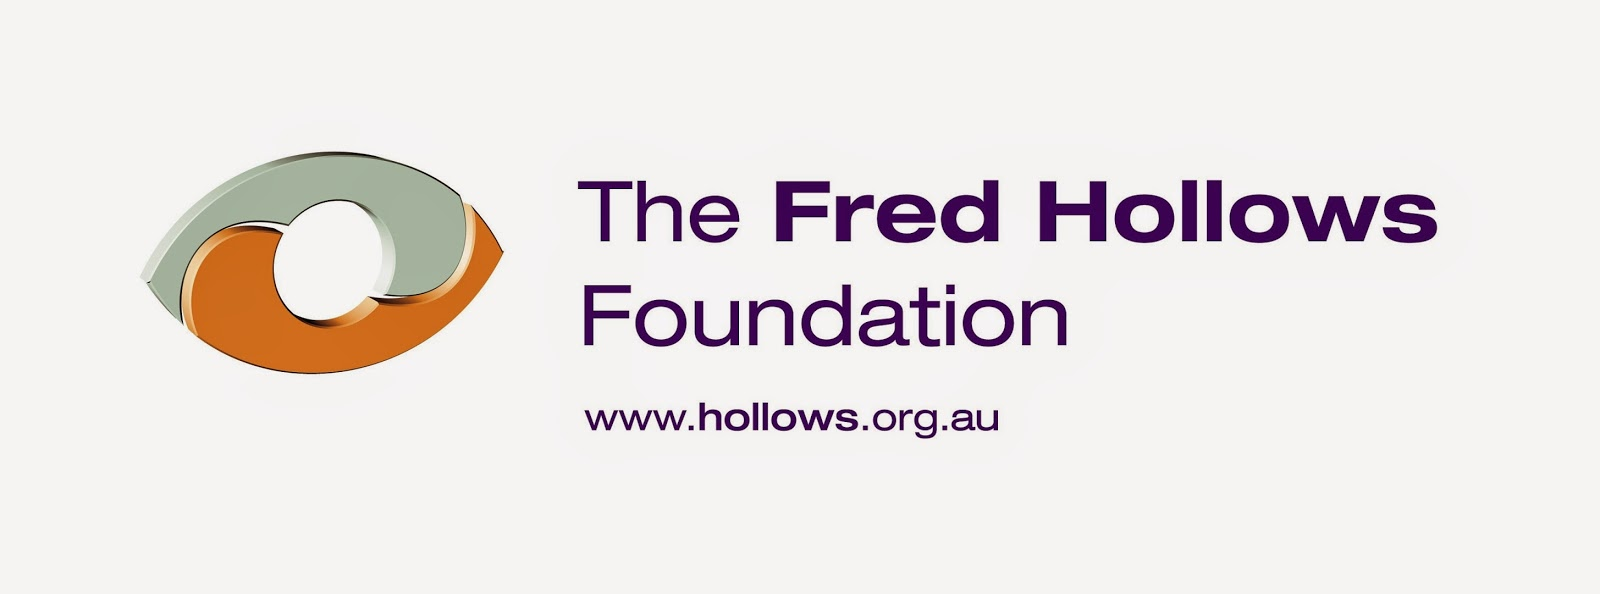 Fred Hollows Foundation Vacancy: Senior Program Officer – Communications and Advocacy, Darwin - Australia